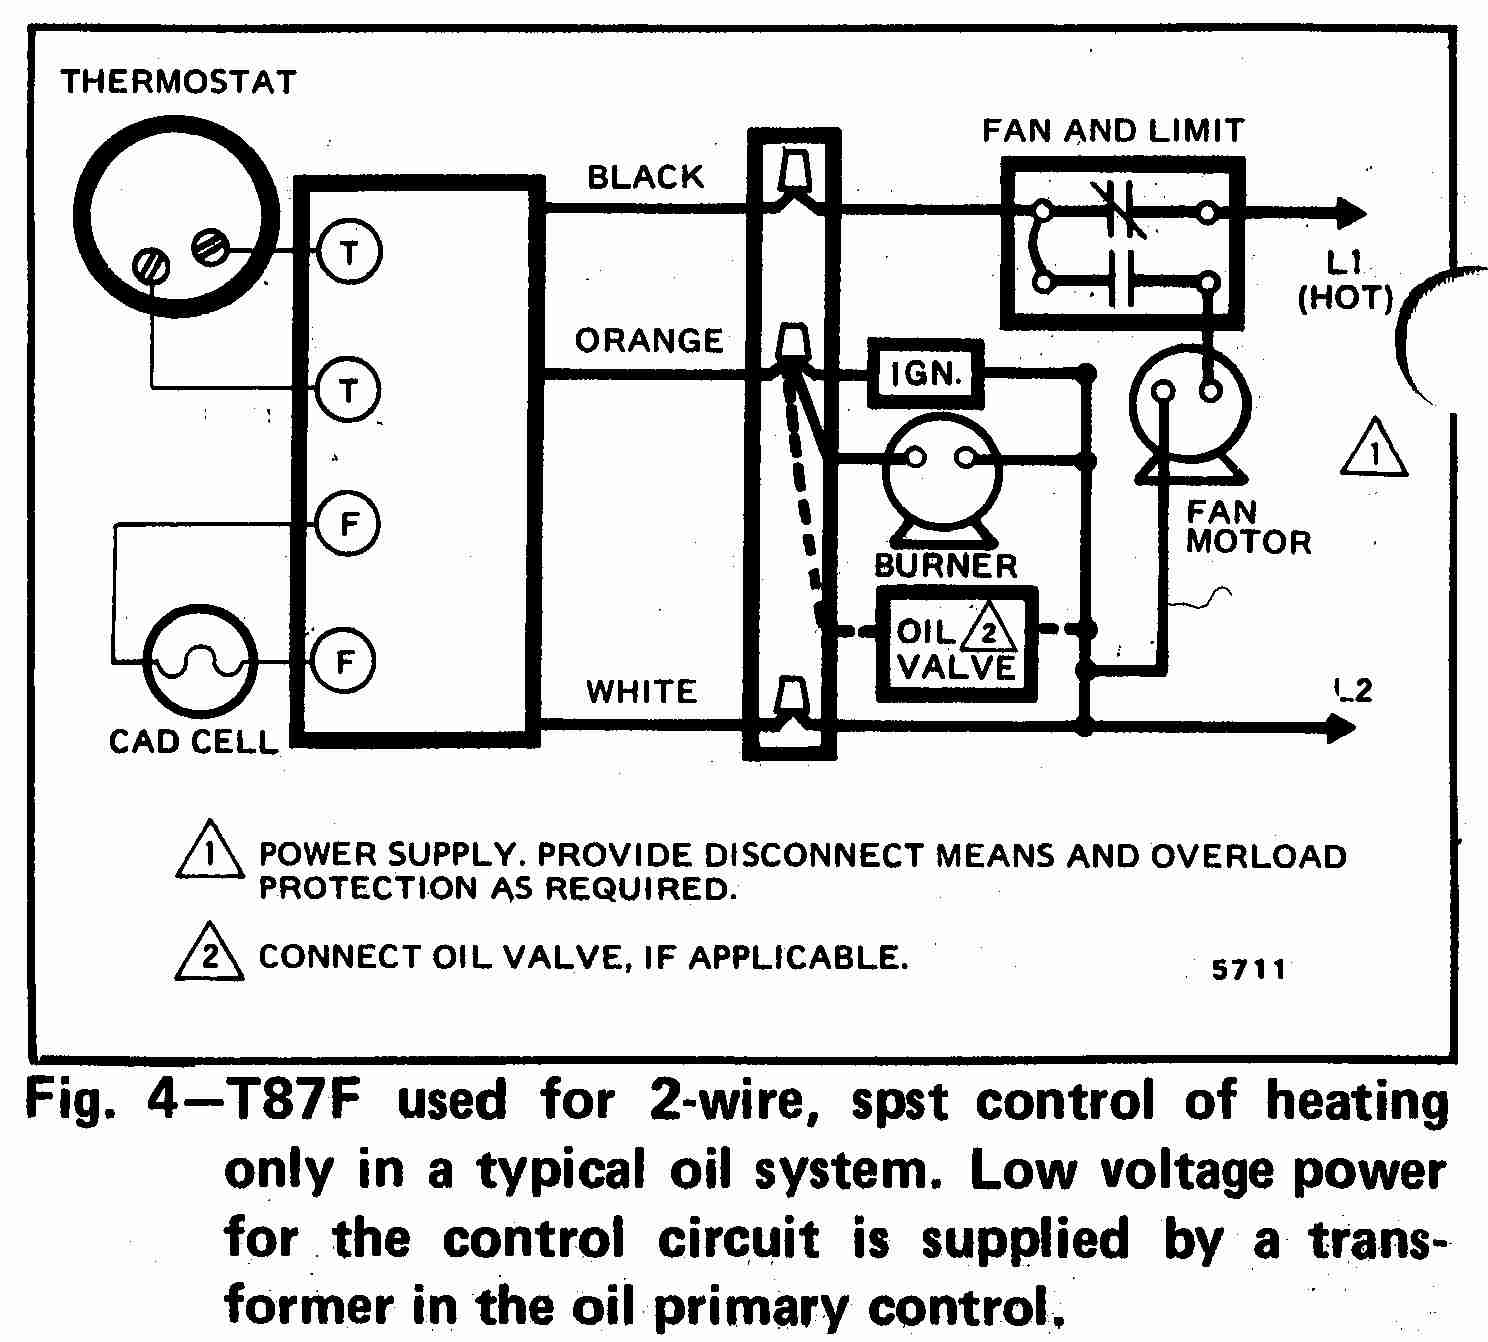 TT_T87F_0002_2W_DJF room thermostat wiring diagrams for hvac systems Basic Outlet Wiring Diagrams at gsmportal.co